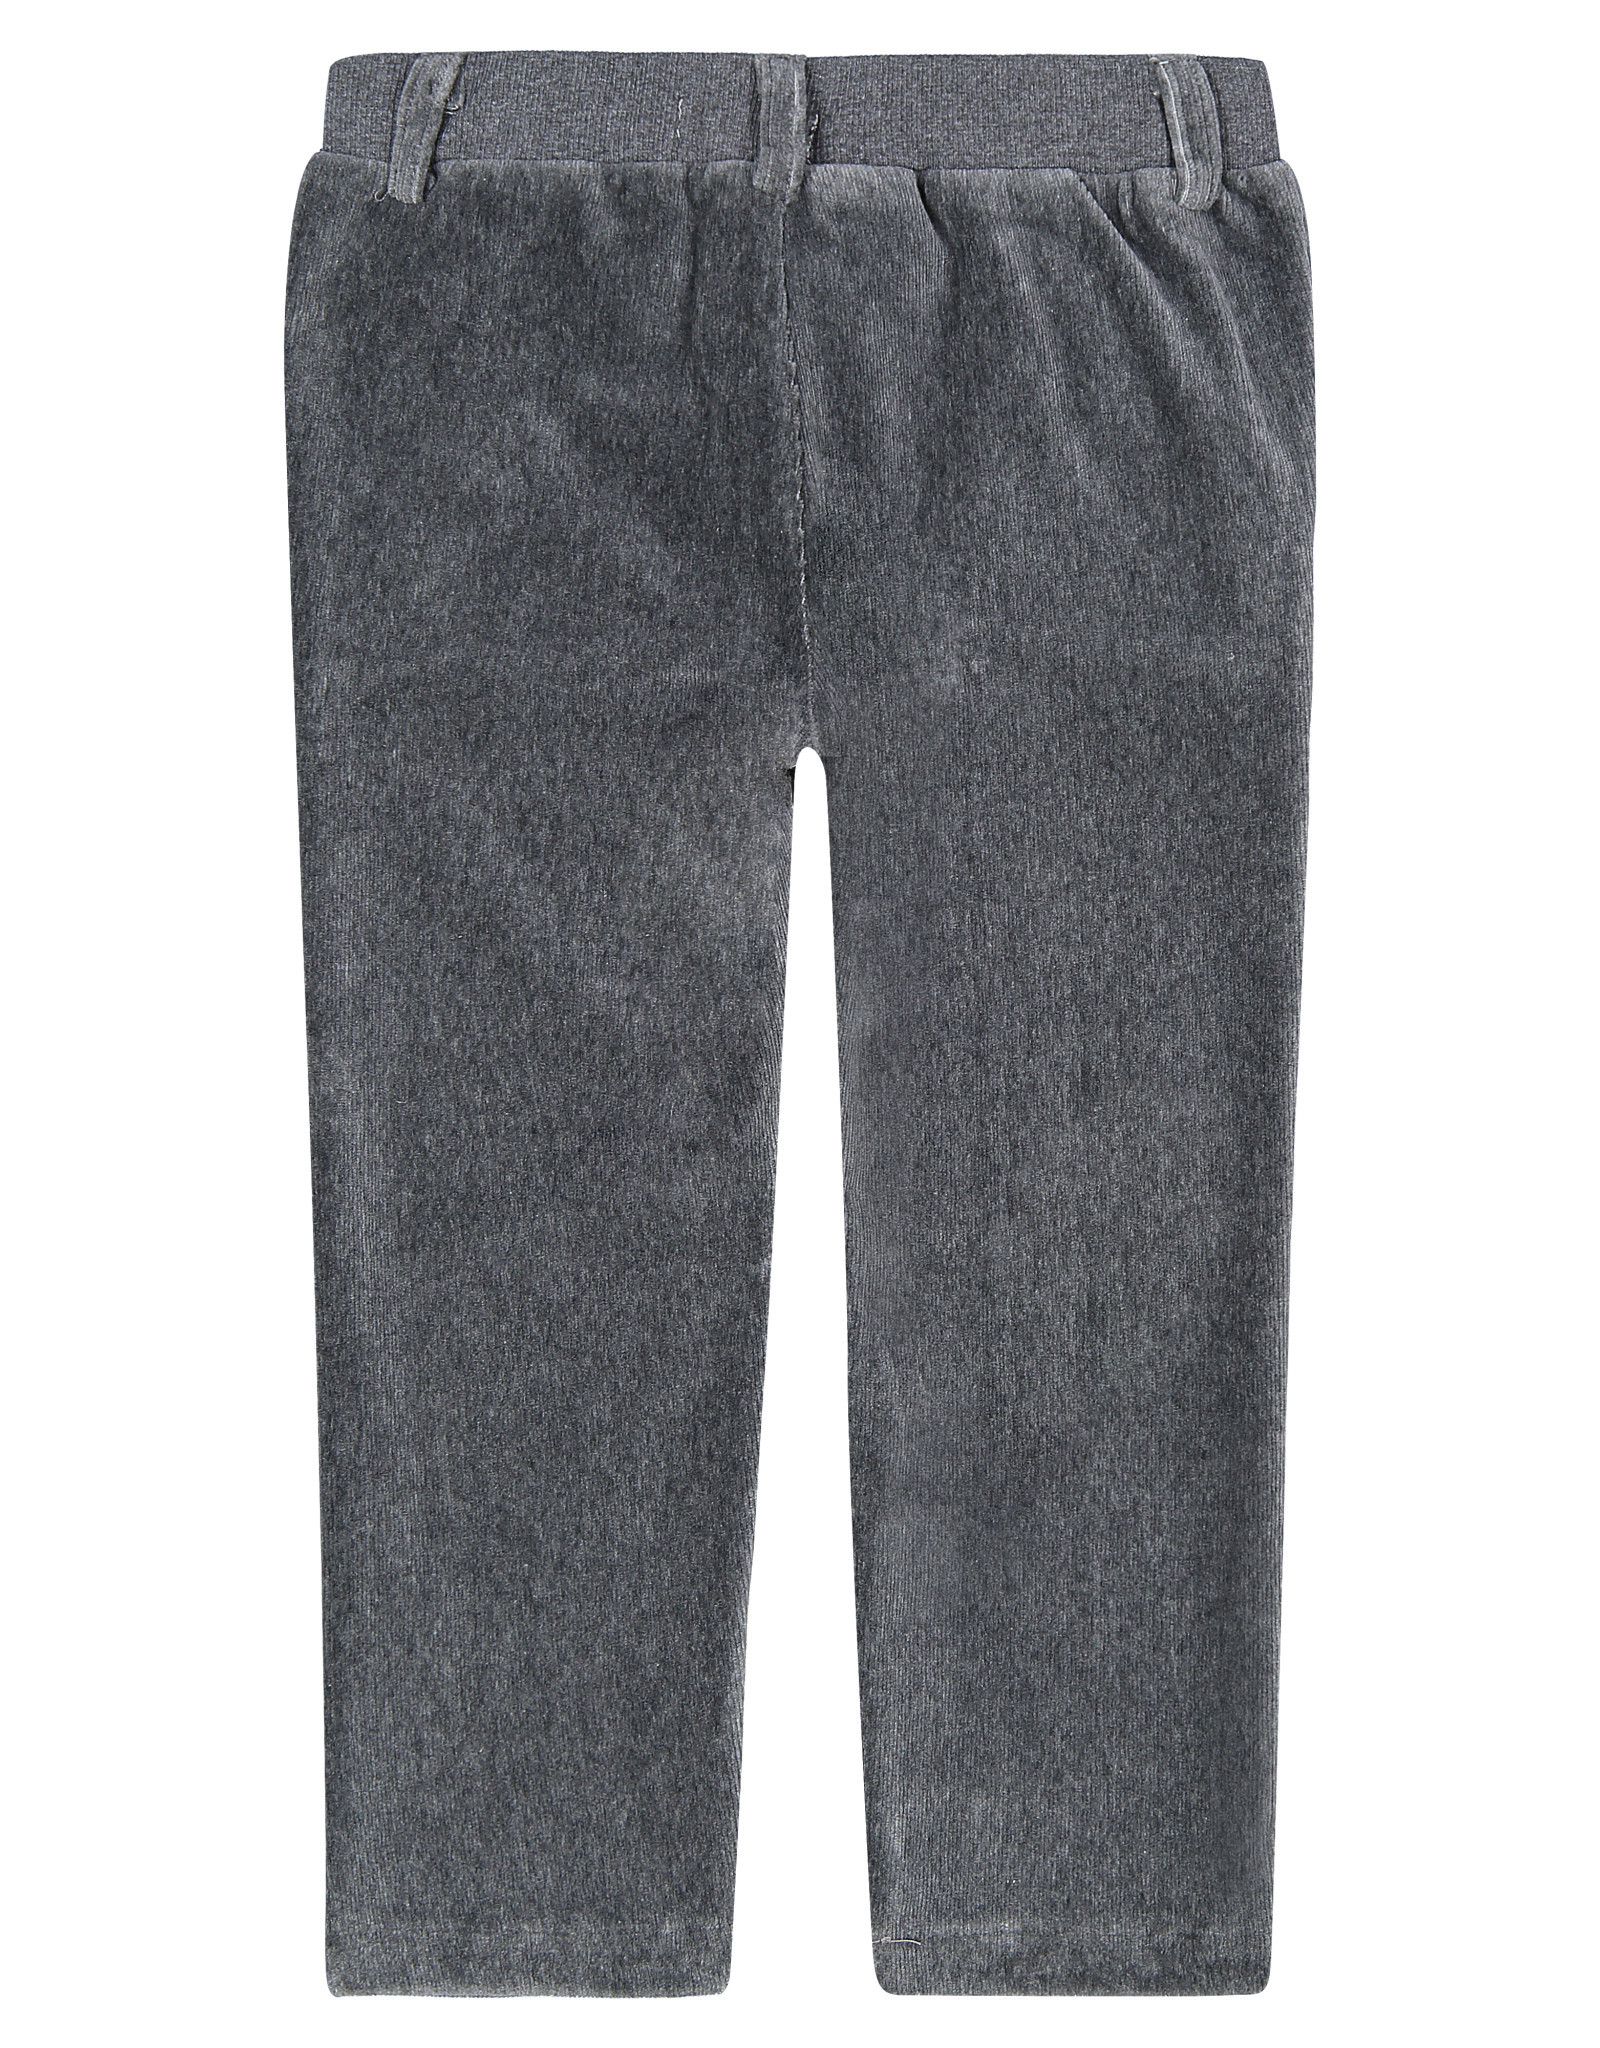 Andy & Evan Pull-On Gray Pants